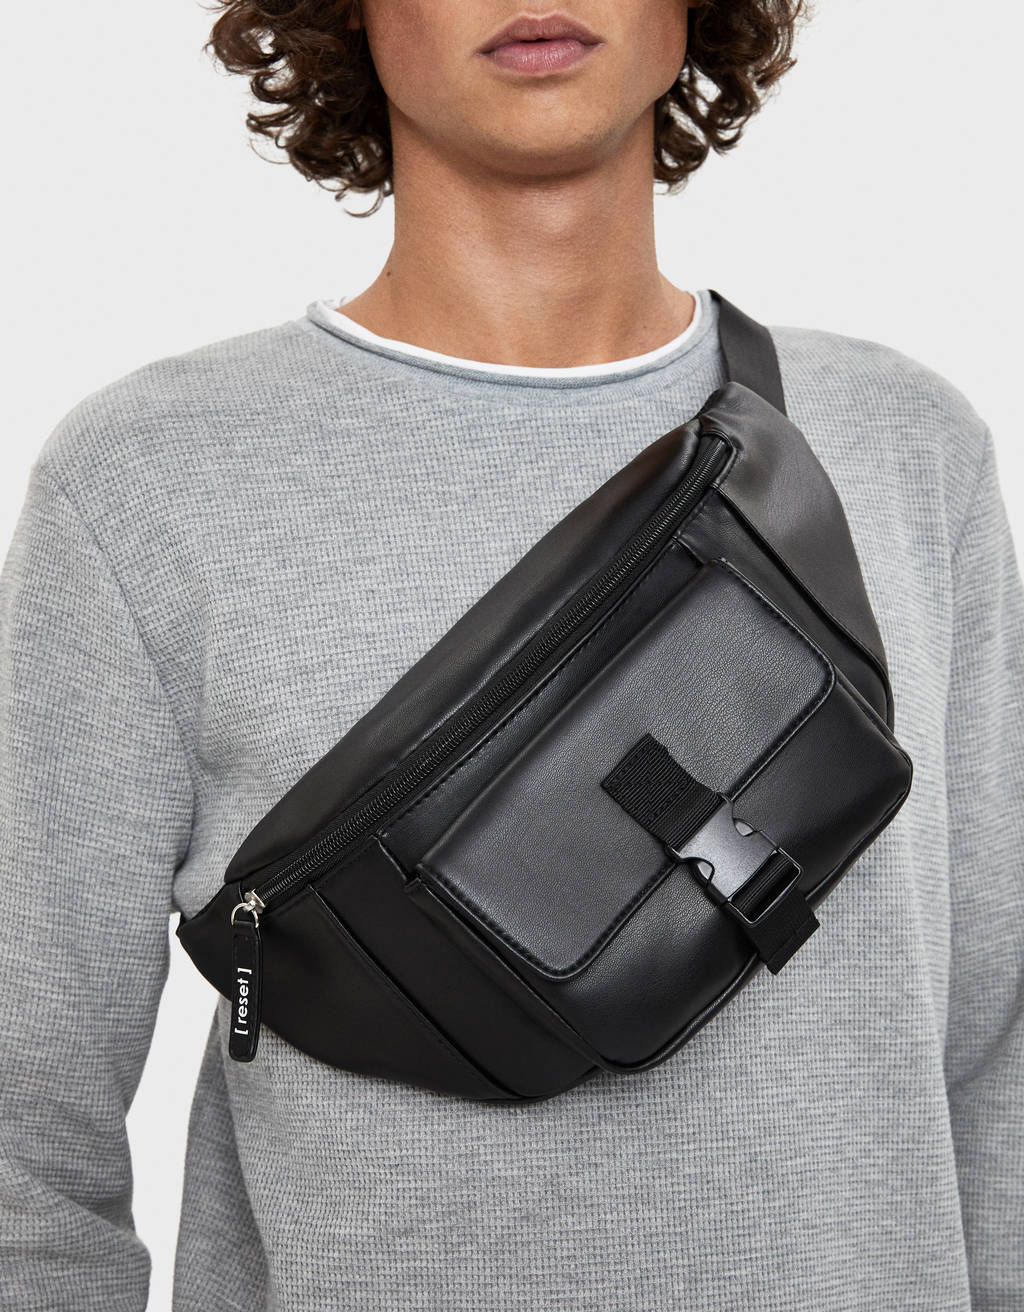 mens bag trends